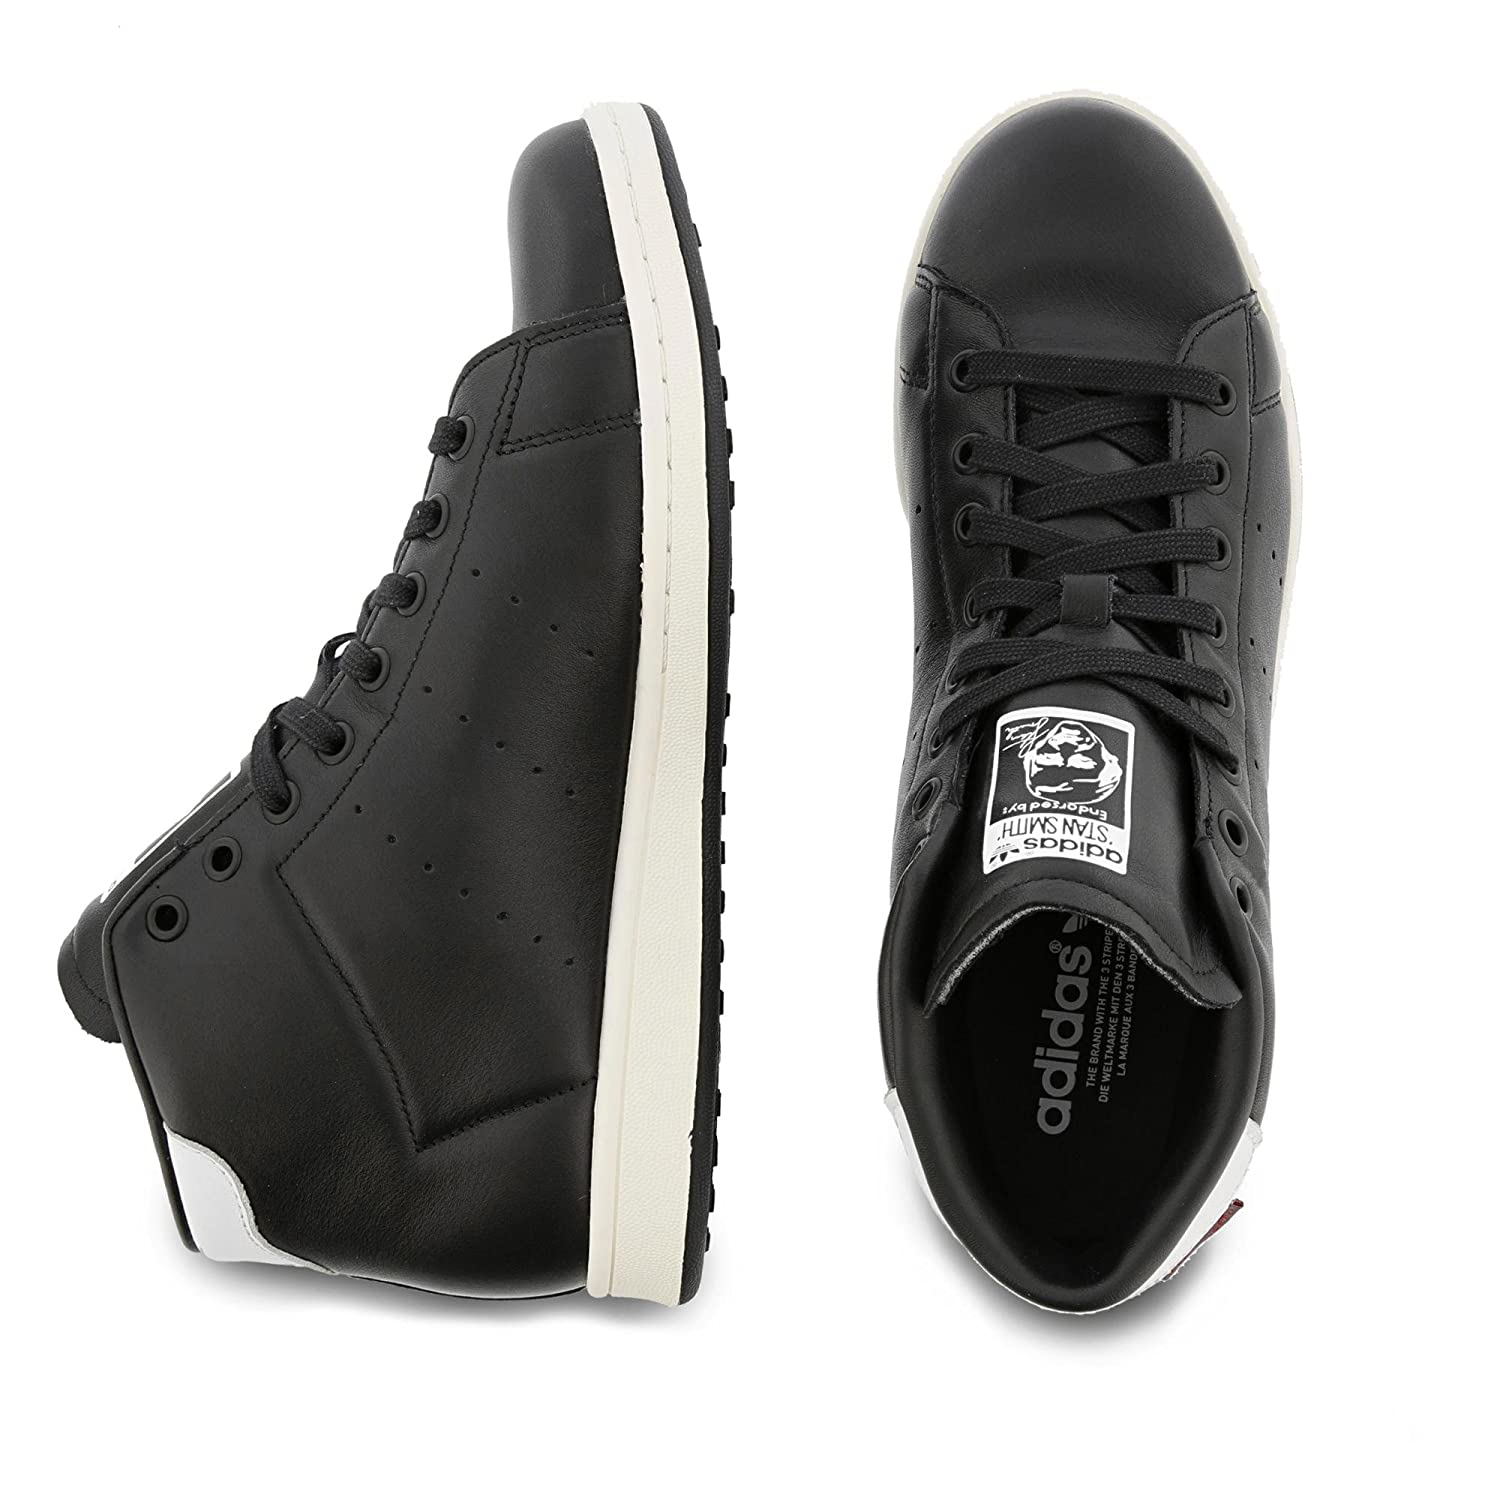 4f89835d4b940 BUTY ADIDAS ORIGINALS STAN SMITH WINTER S80497 - 41: MainApps:  Amazon.co.uk: Shoes & Bags